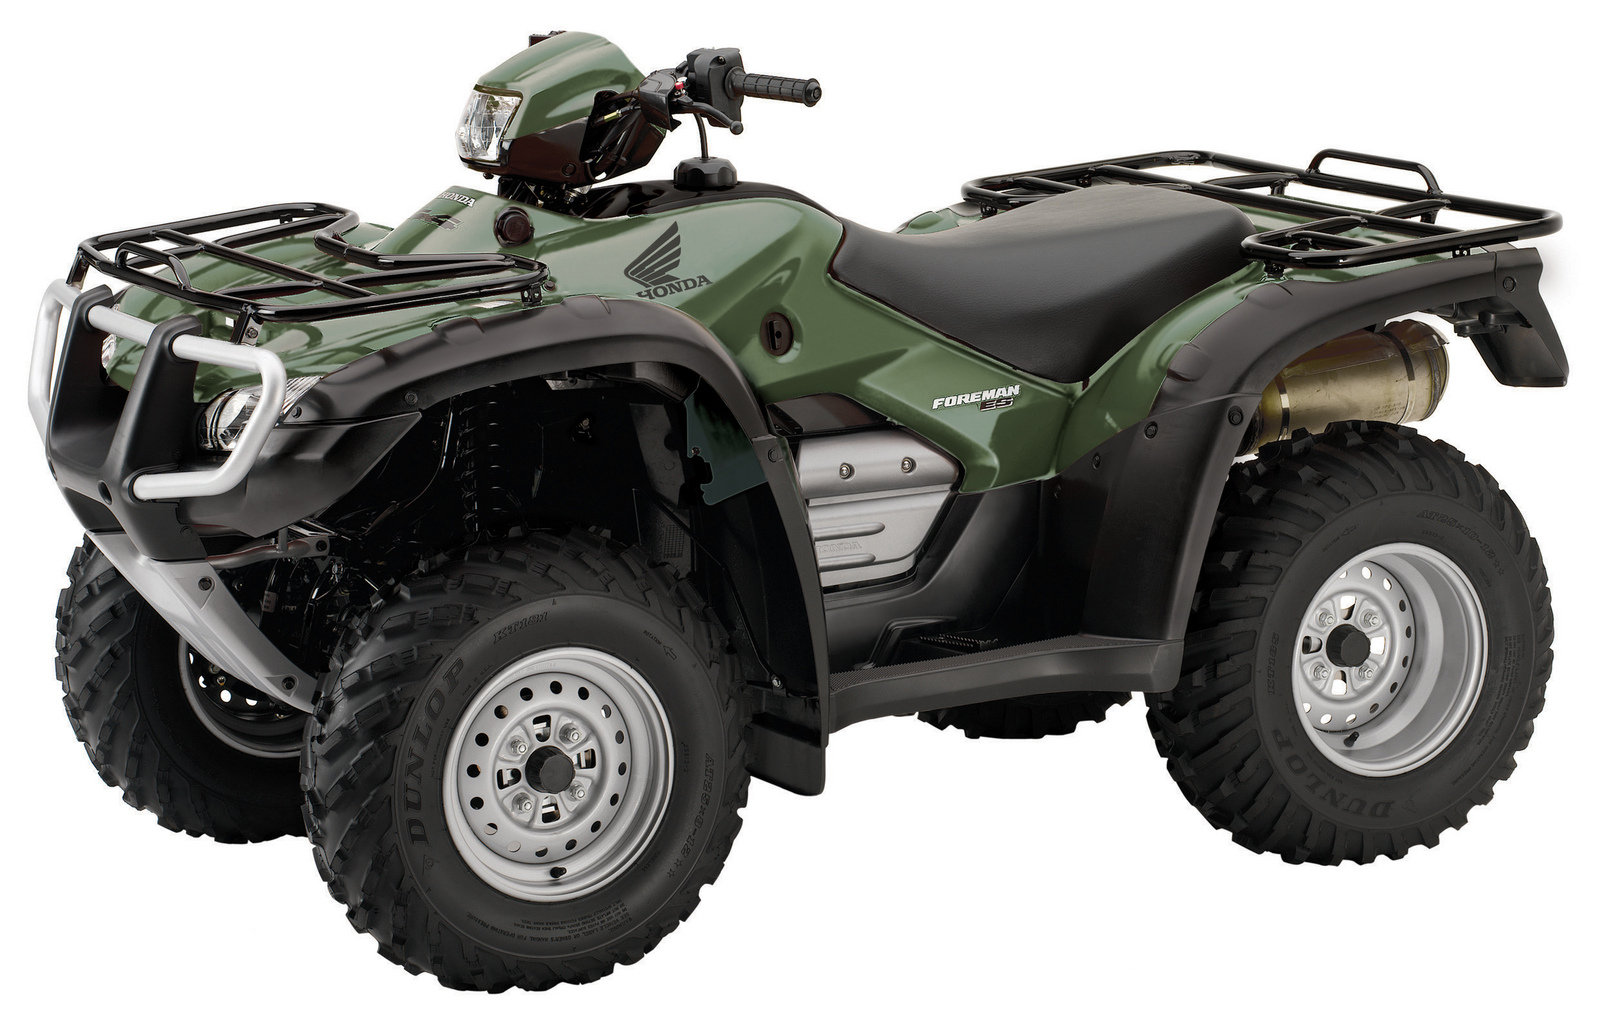 2006 honda fourtrax foreman 4x4 es picture 42842 motorcycle review top speed. Black Bedroom Furniture Sets. Home Design Ideas